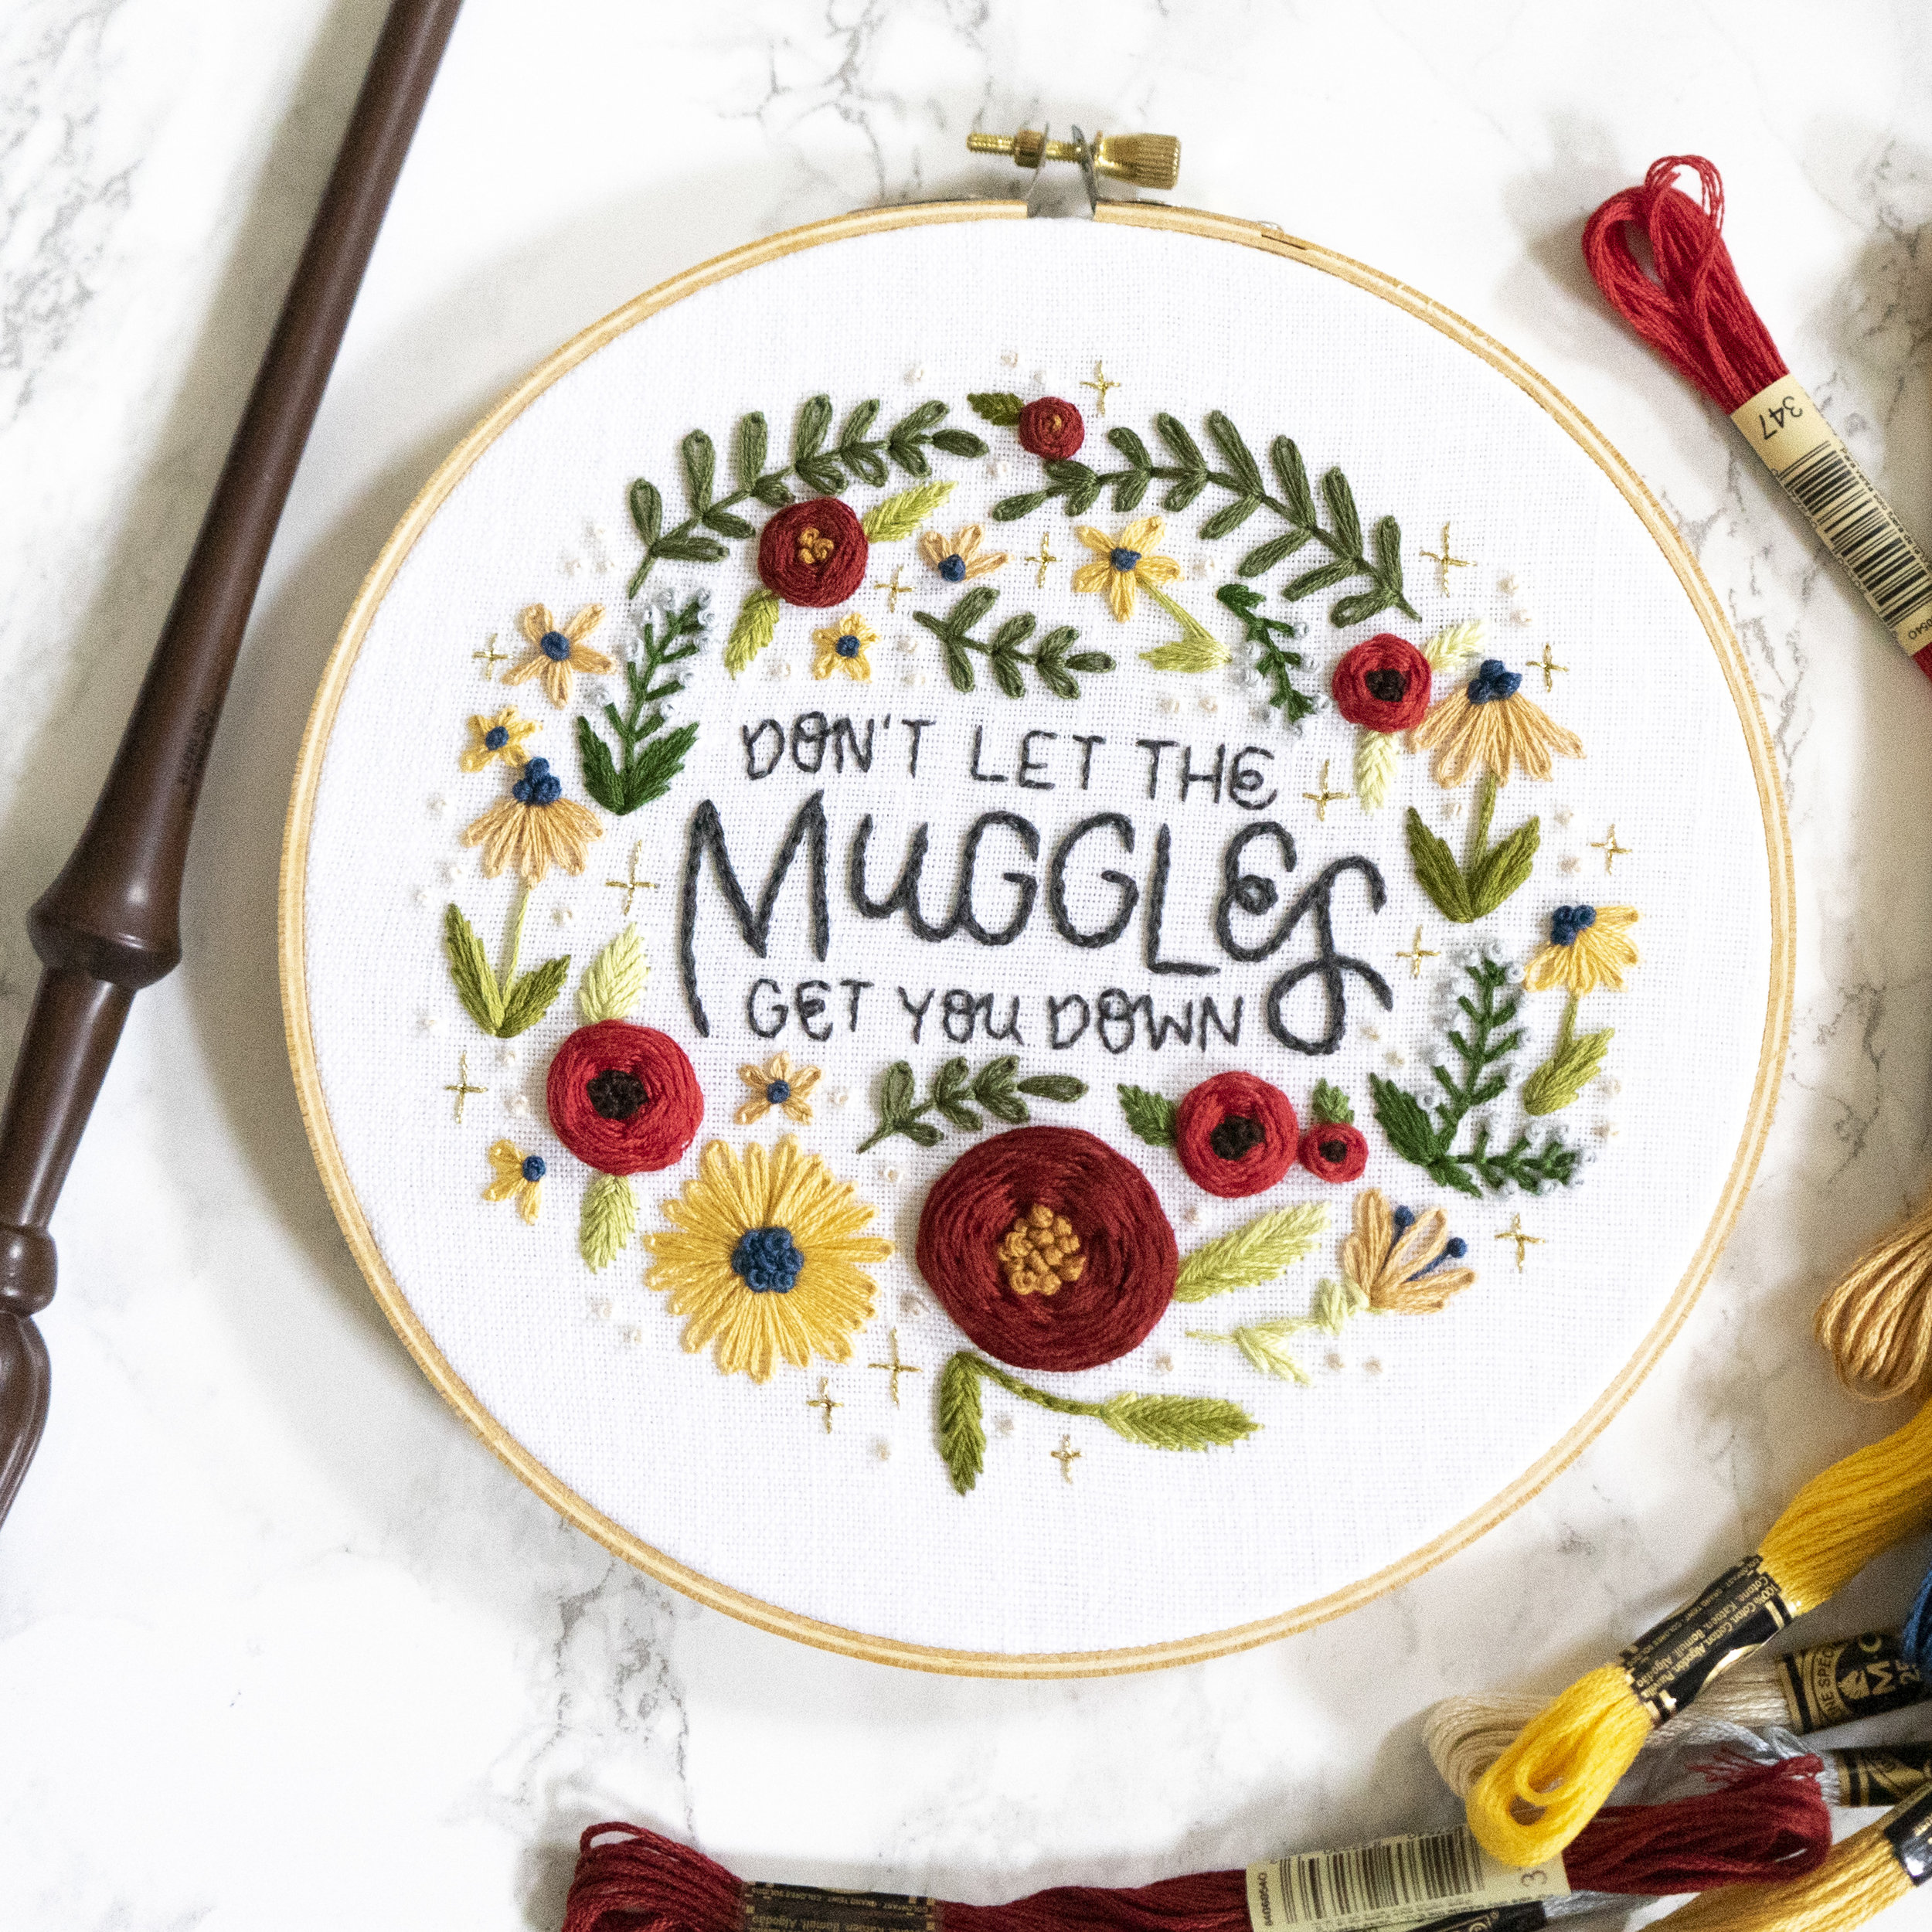 Don't Let the Muggles Get you Down Embroidery Pattern - This hoop is perfect for any magic loving muggle. Click the button below to begin your digital download!GET THE PATTERN